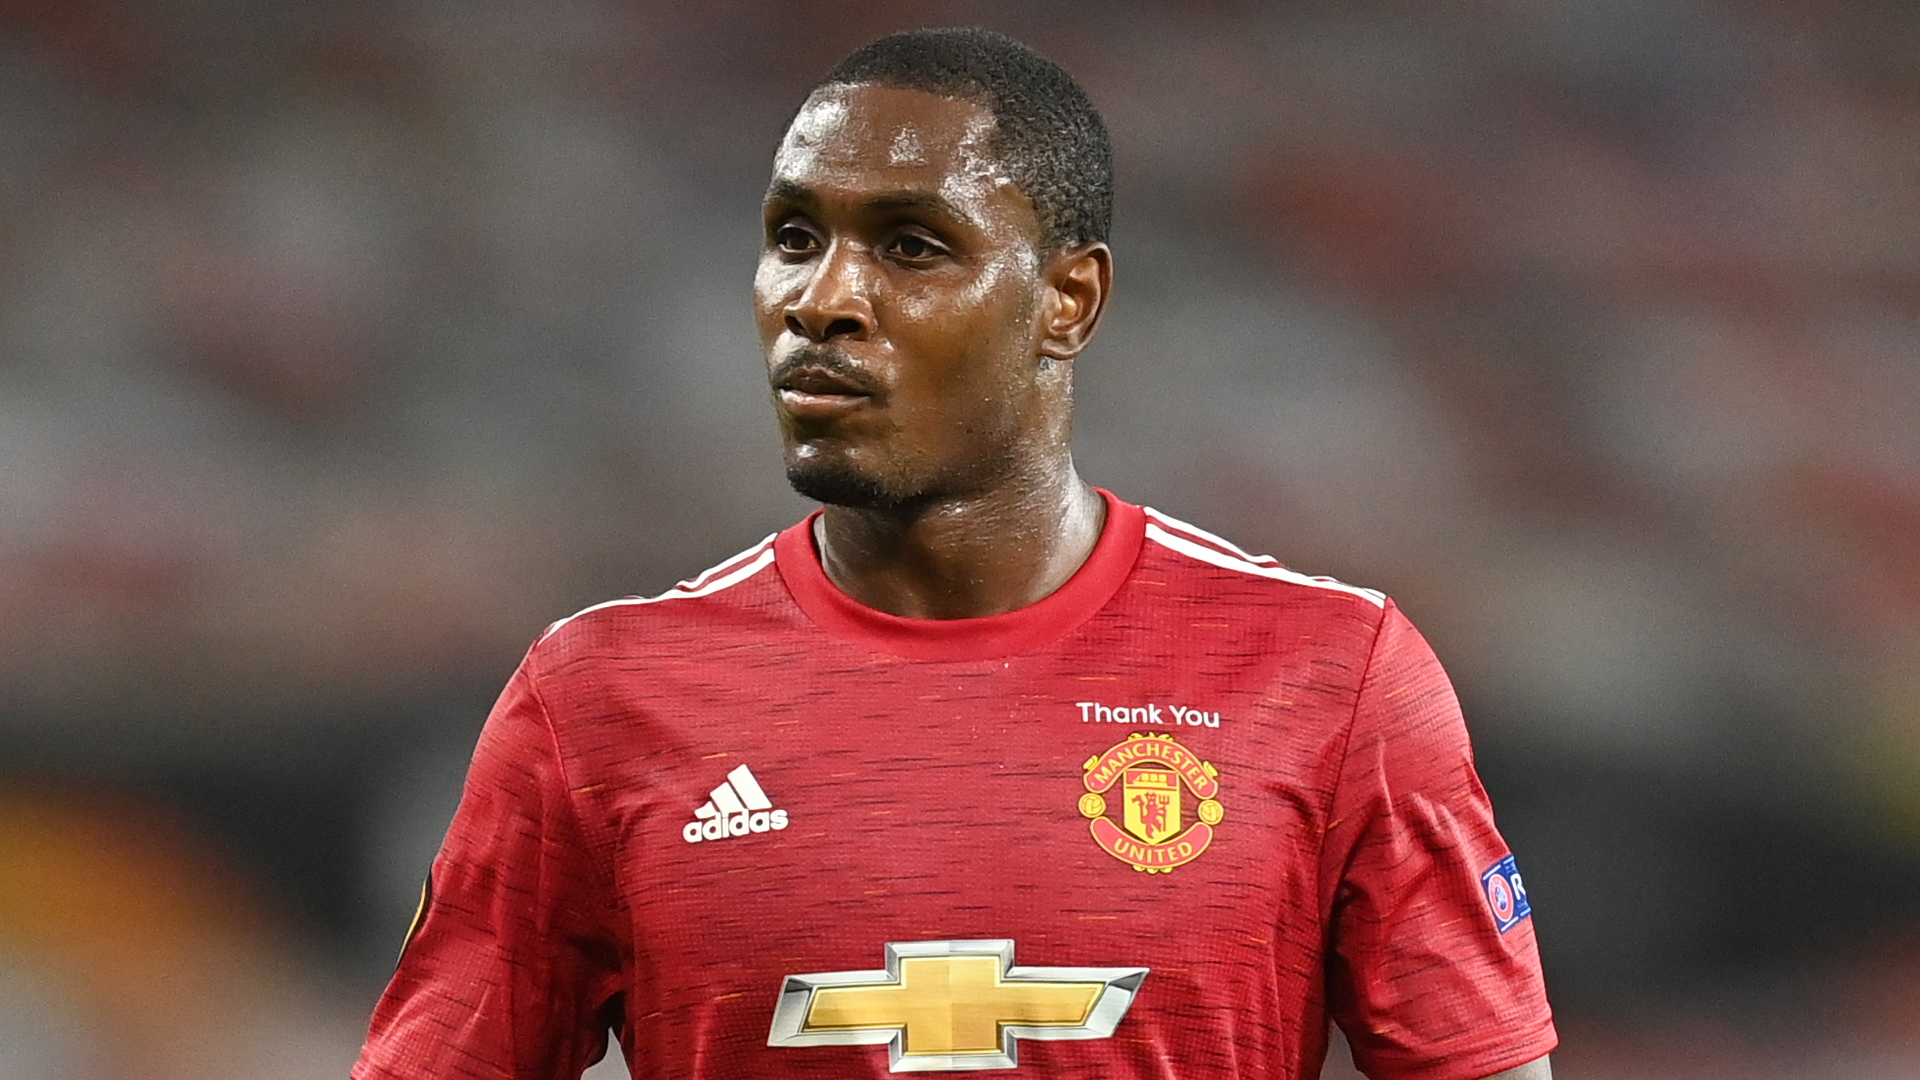 EPL: Ighalo battle-ready for Newcastle United clash